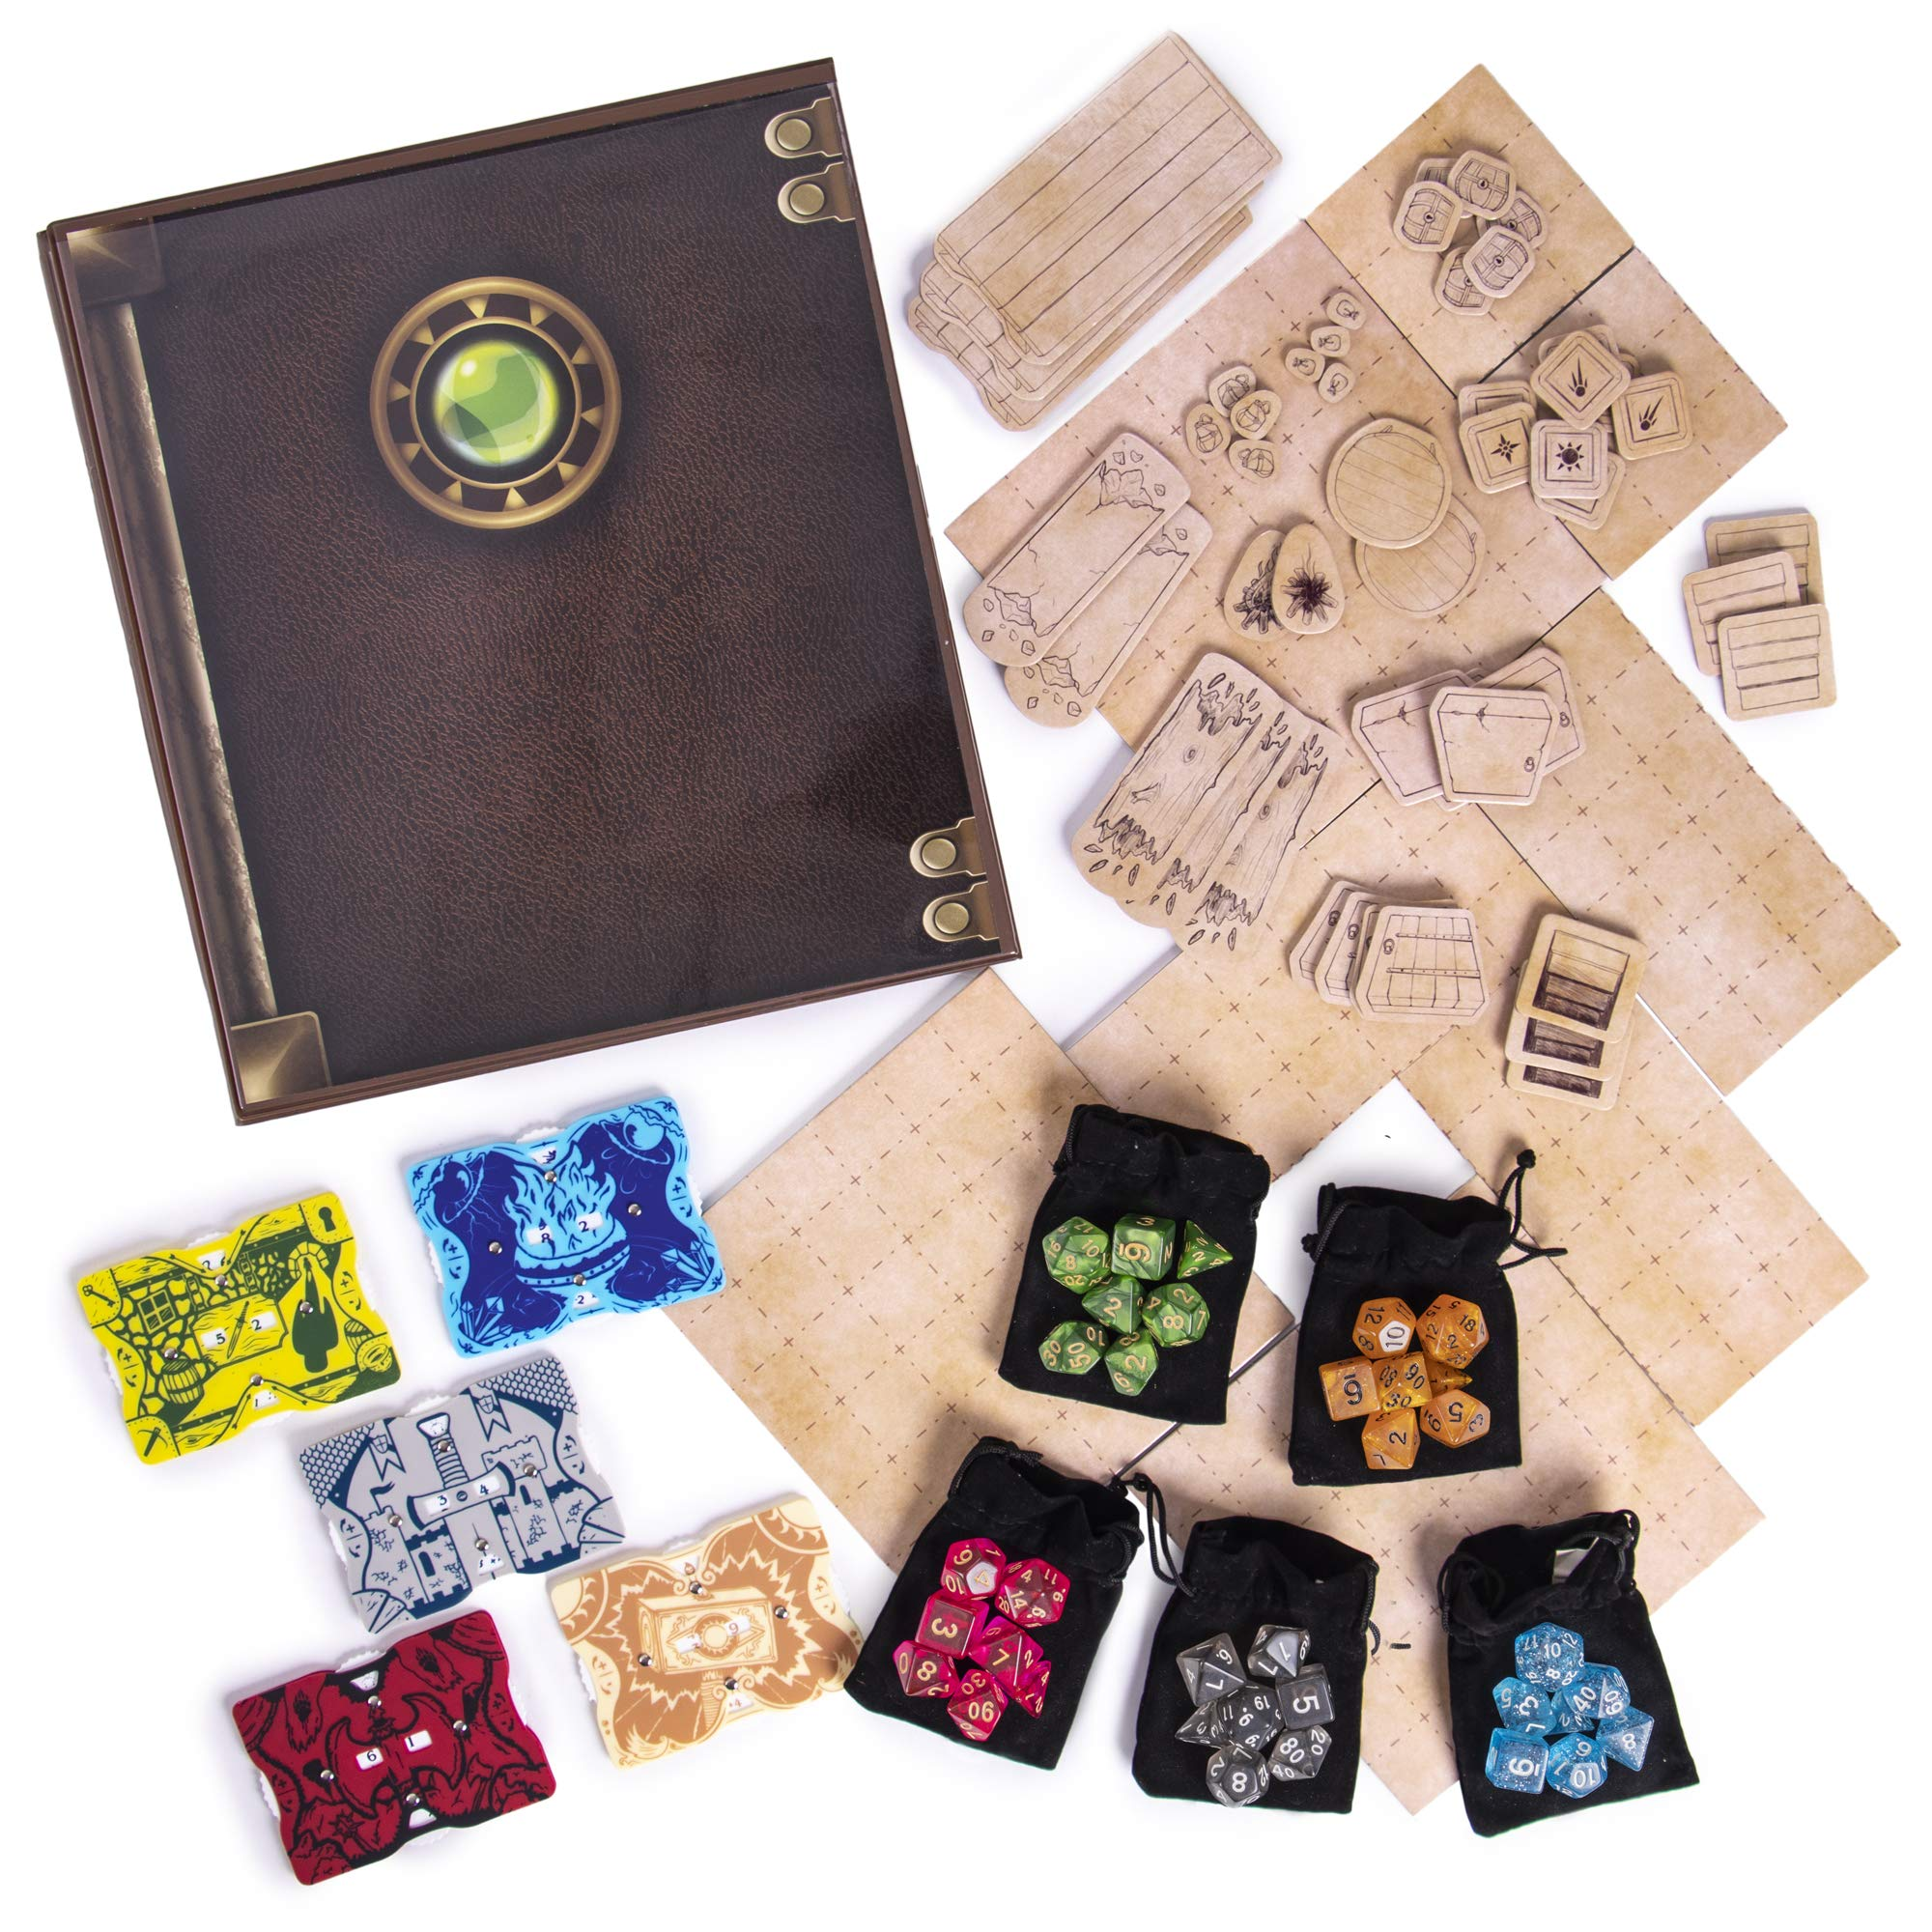 Dungeon Master Essentials: Roleplaying Starter Kit | Customizable GM Screen, 44 Reversible Map Tiles, 5 Character Health Trackers, 5 Polyhedral Dice Sets | Tabletop Fantasy Game Beginner Accessories by Stratagem (Image #7)